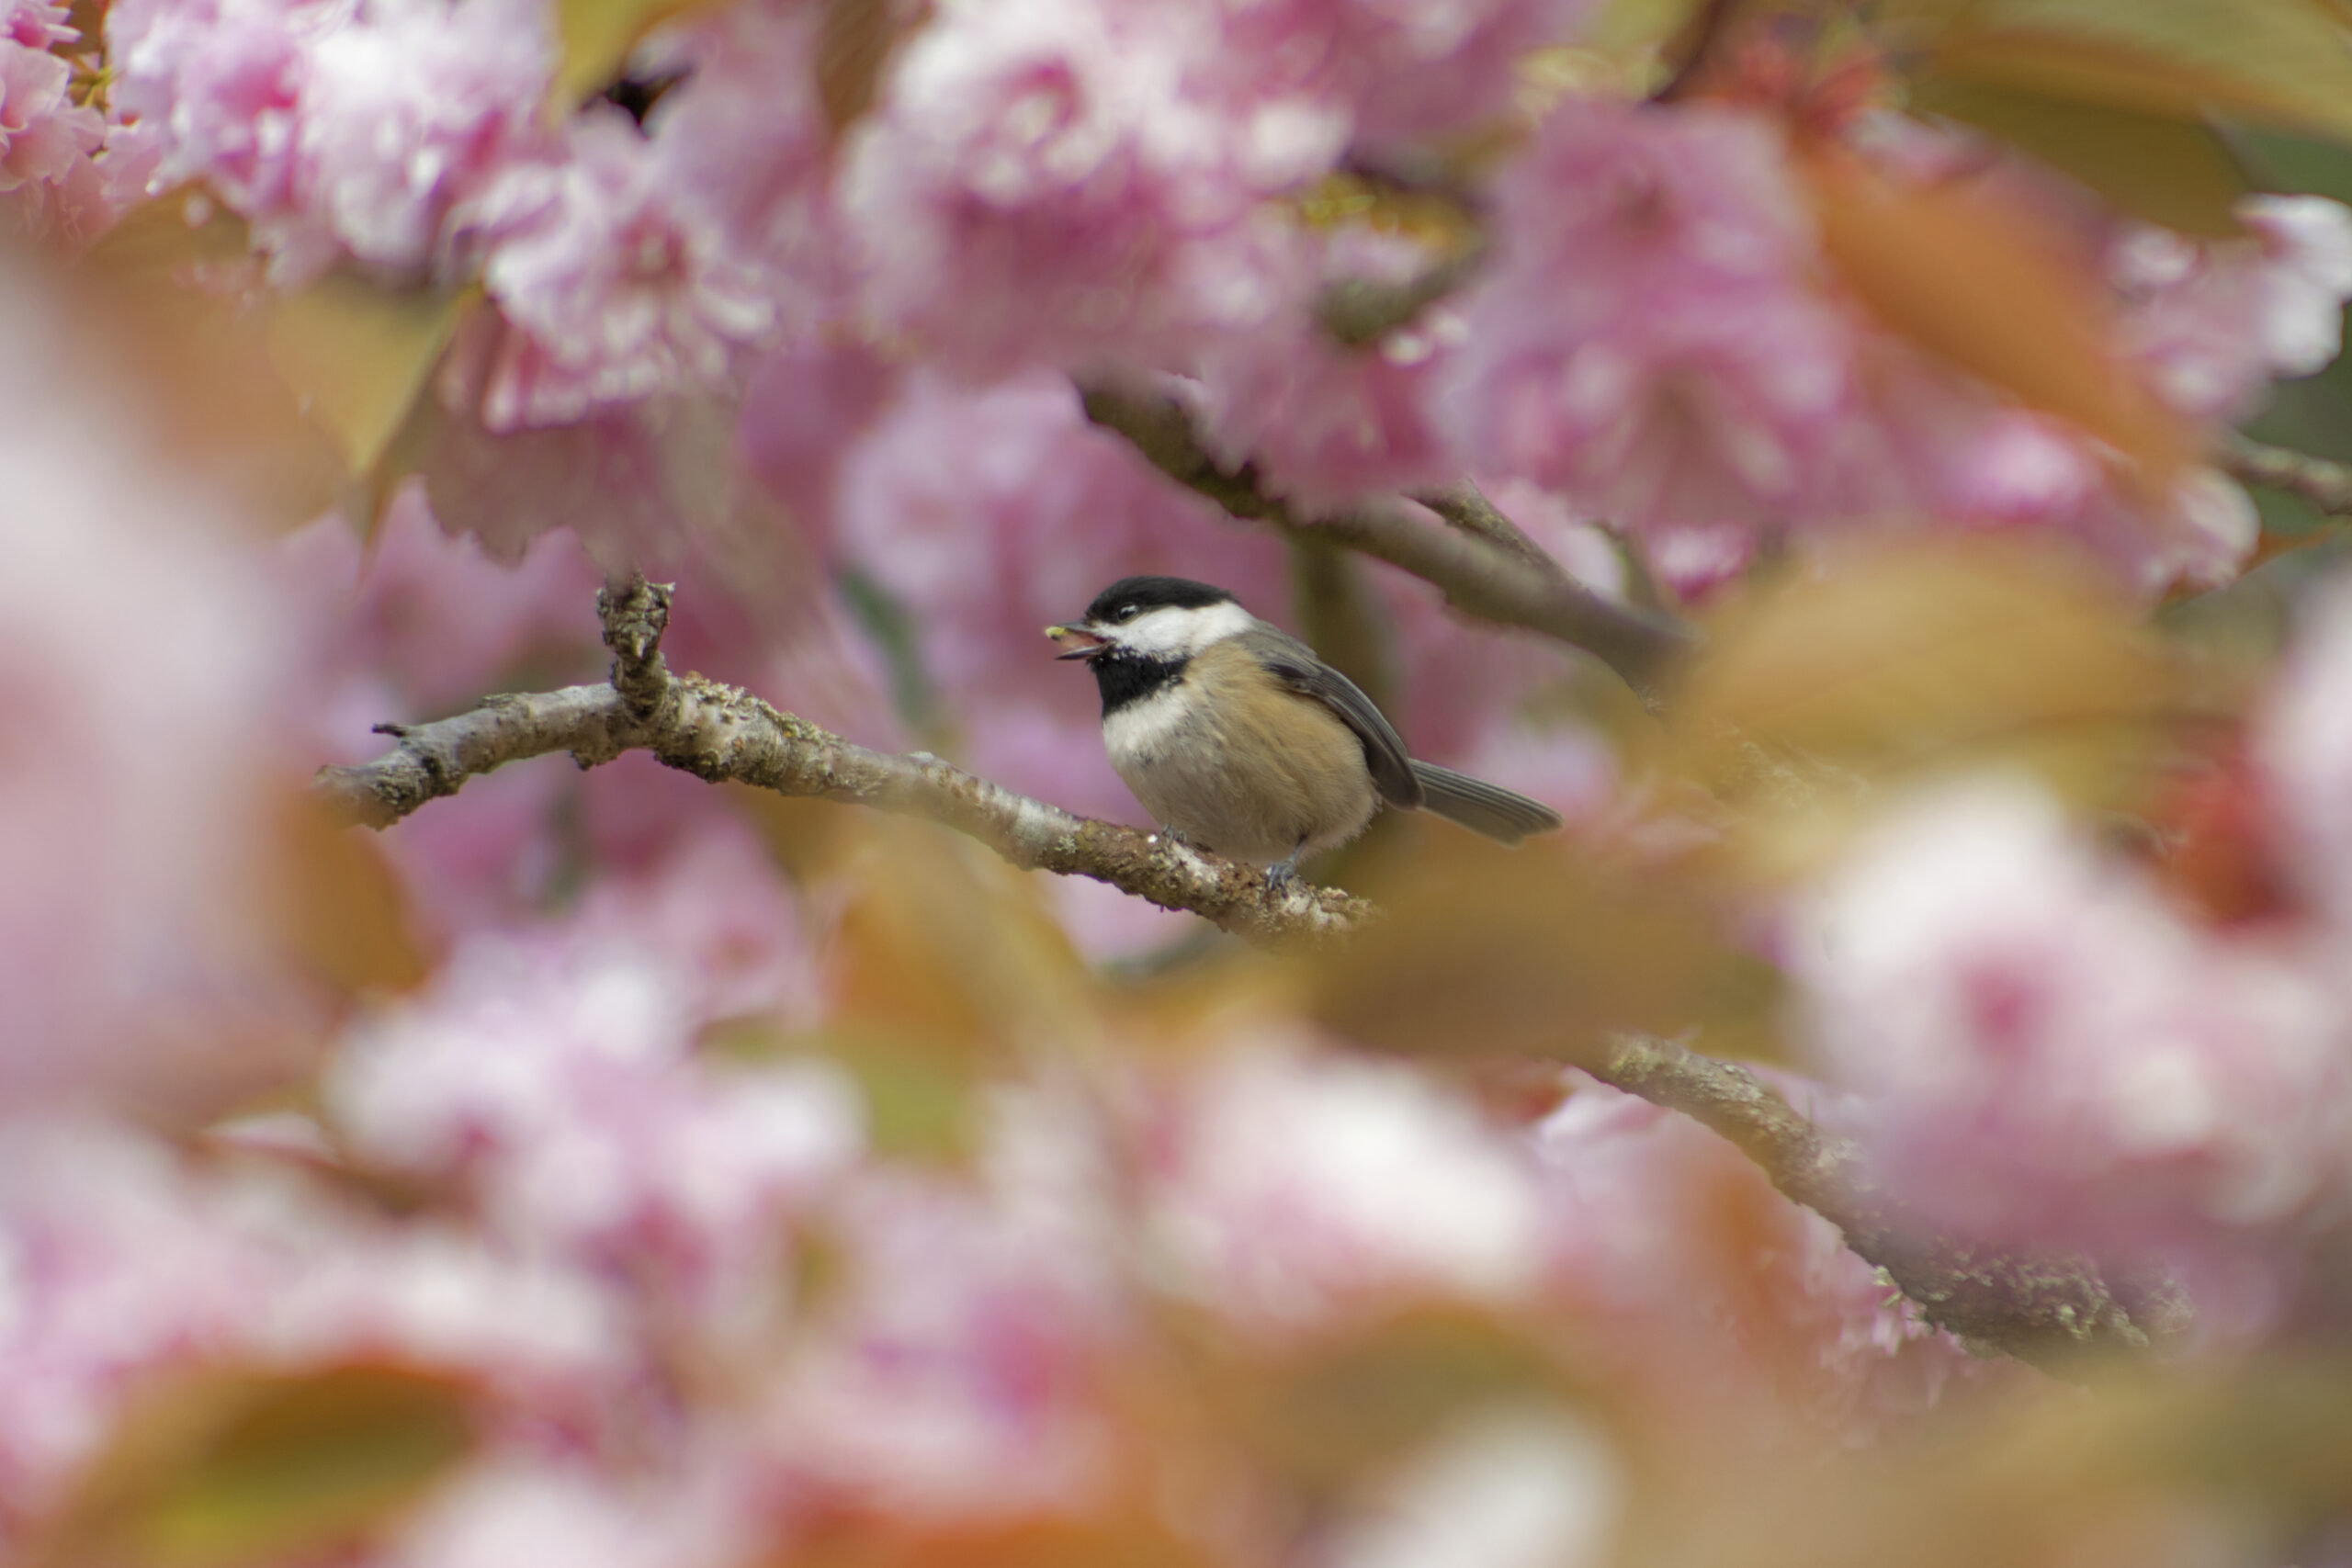 Black Capped Chickadee in Blossoms, Having a Snack, April 25, 2021